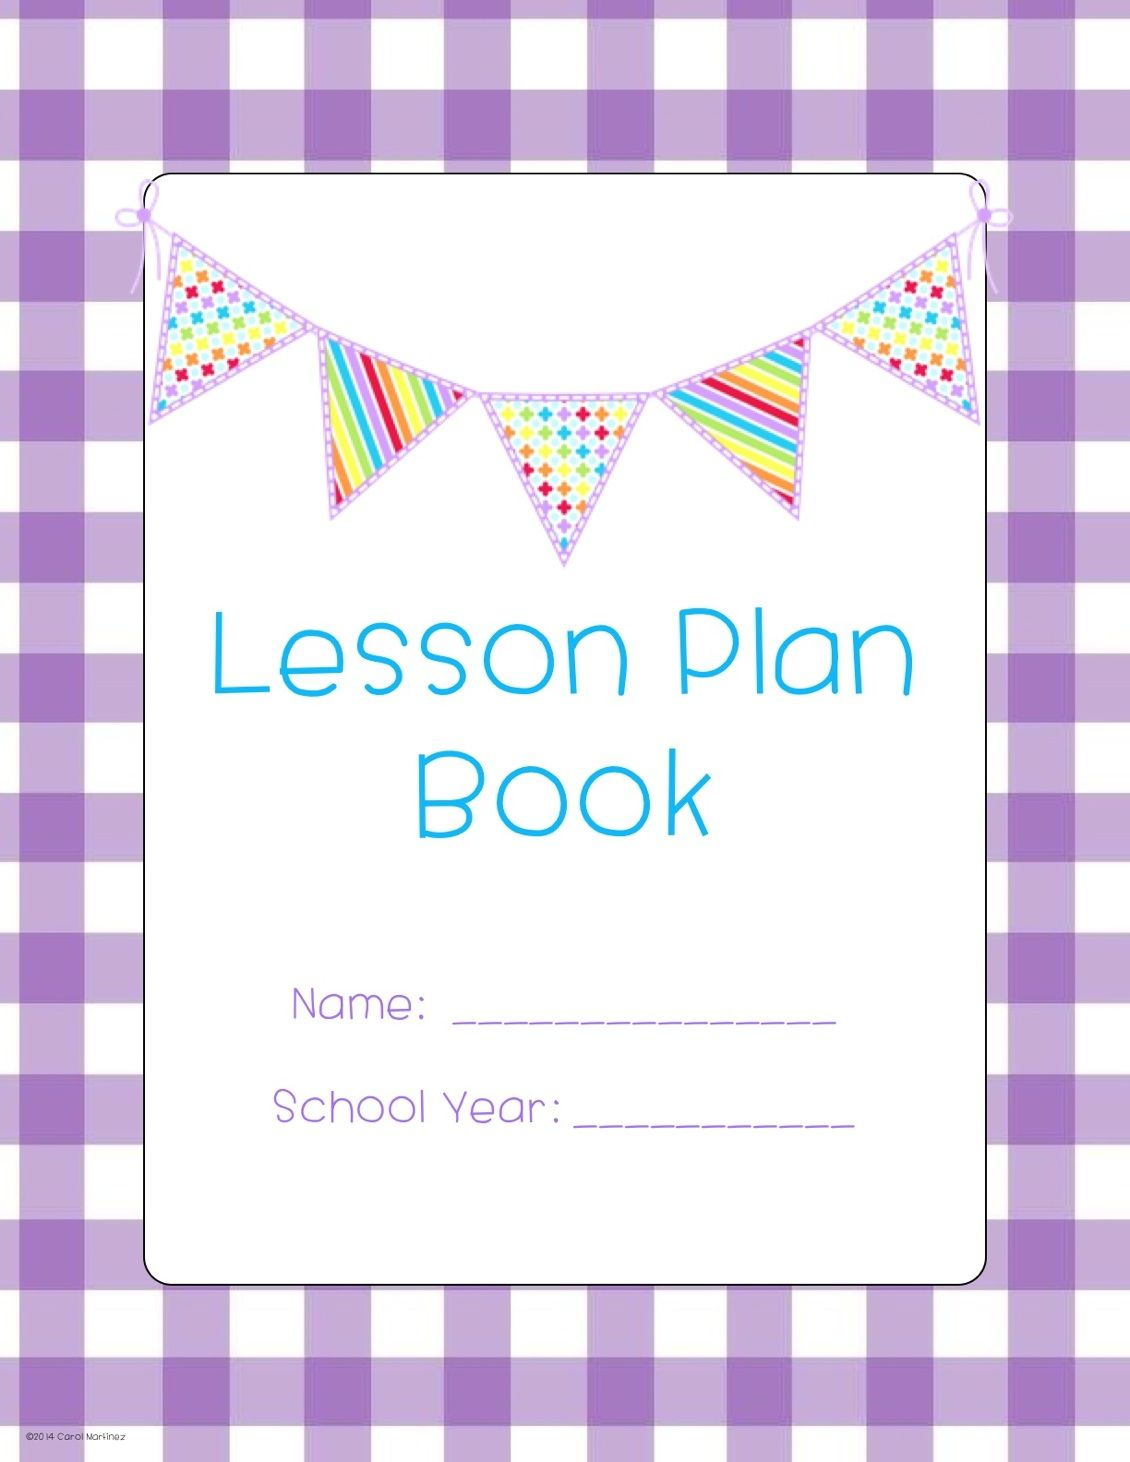 Lesson Plan Templates  More Purple Gingham With Pendants